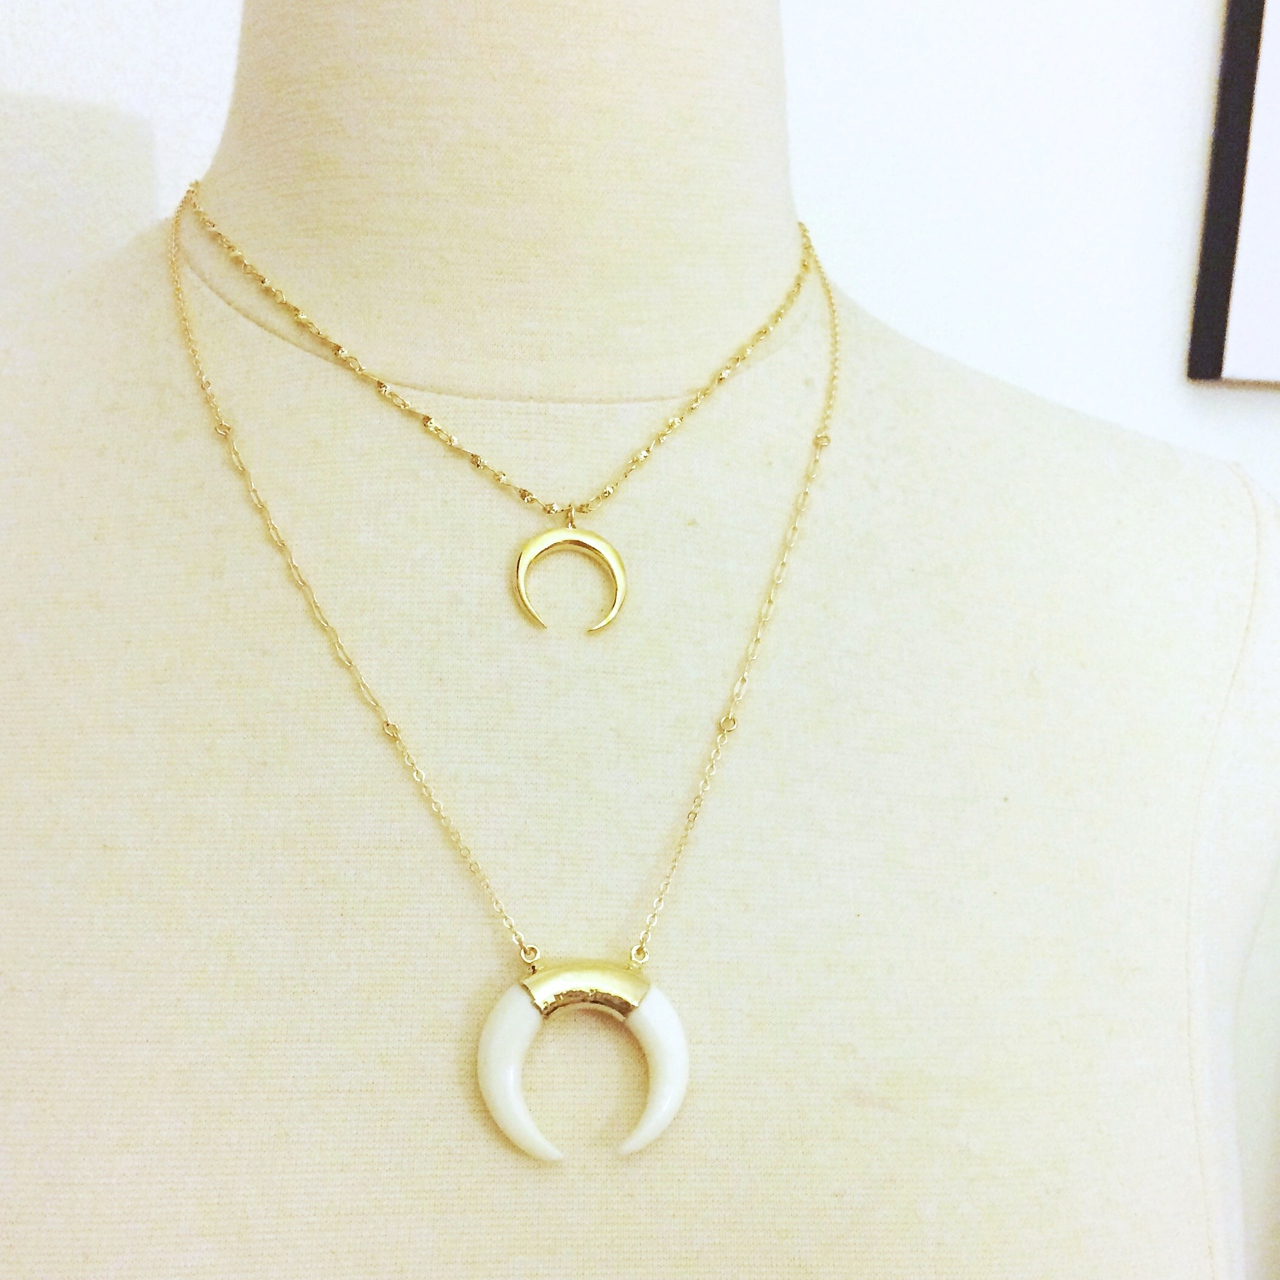 boho new horn jewelry moon item famshin crescent double necklace gift fashion tomtosh minimal girlfriend